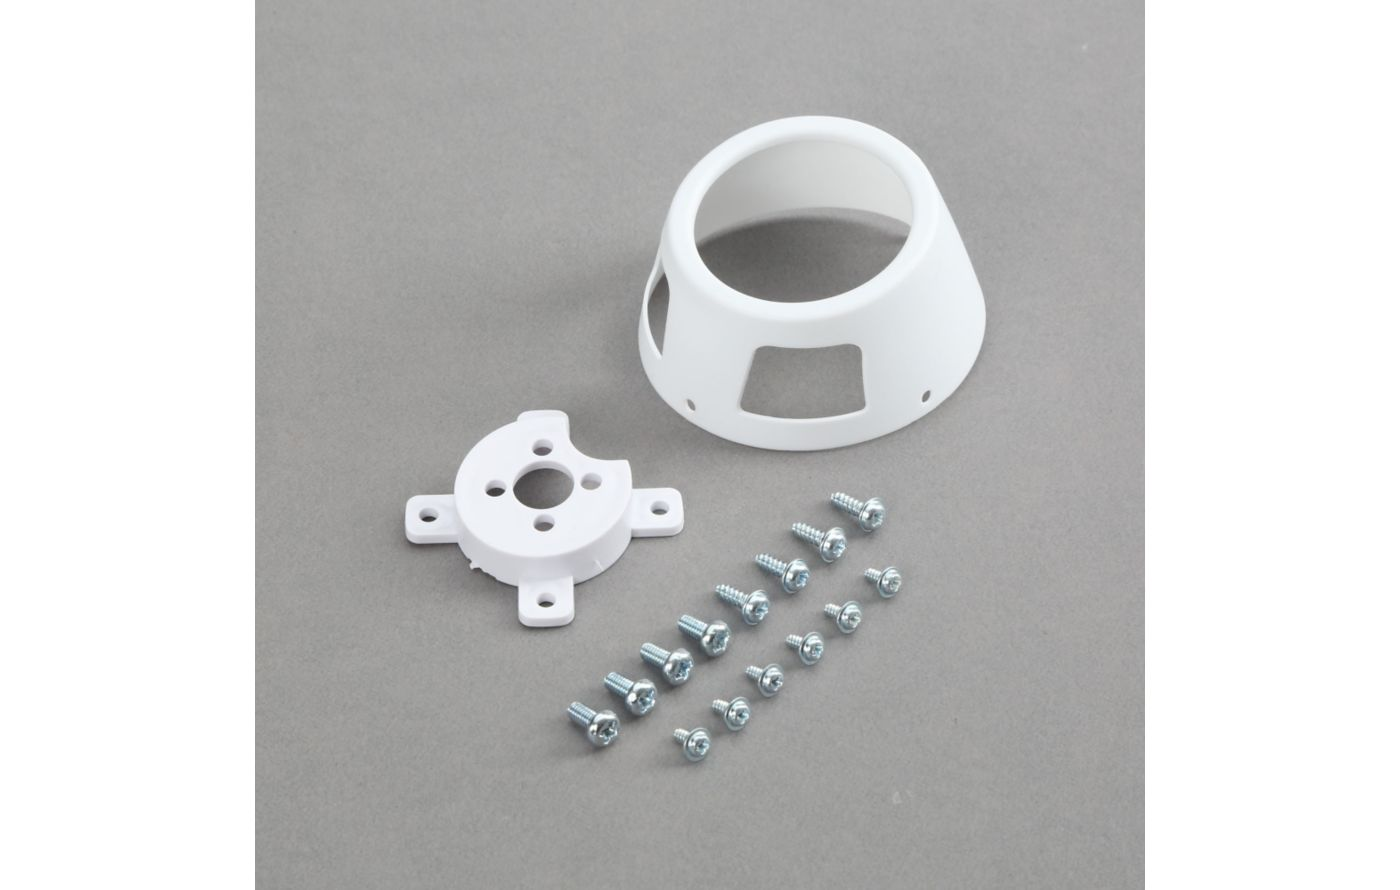 Image for Cowl/Motor Mount with Screws: Conscendo S from Force RC